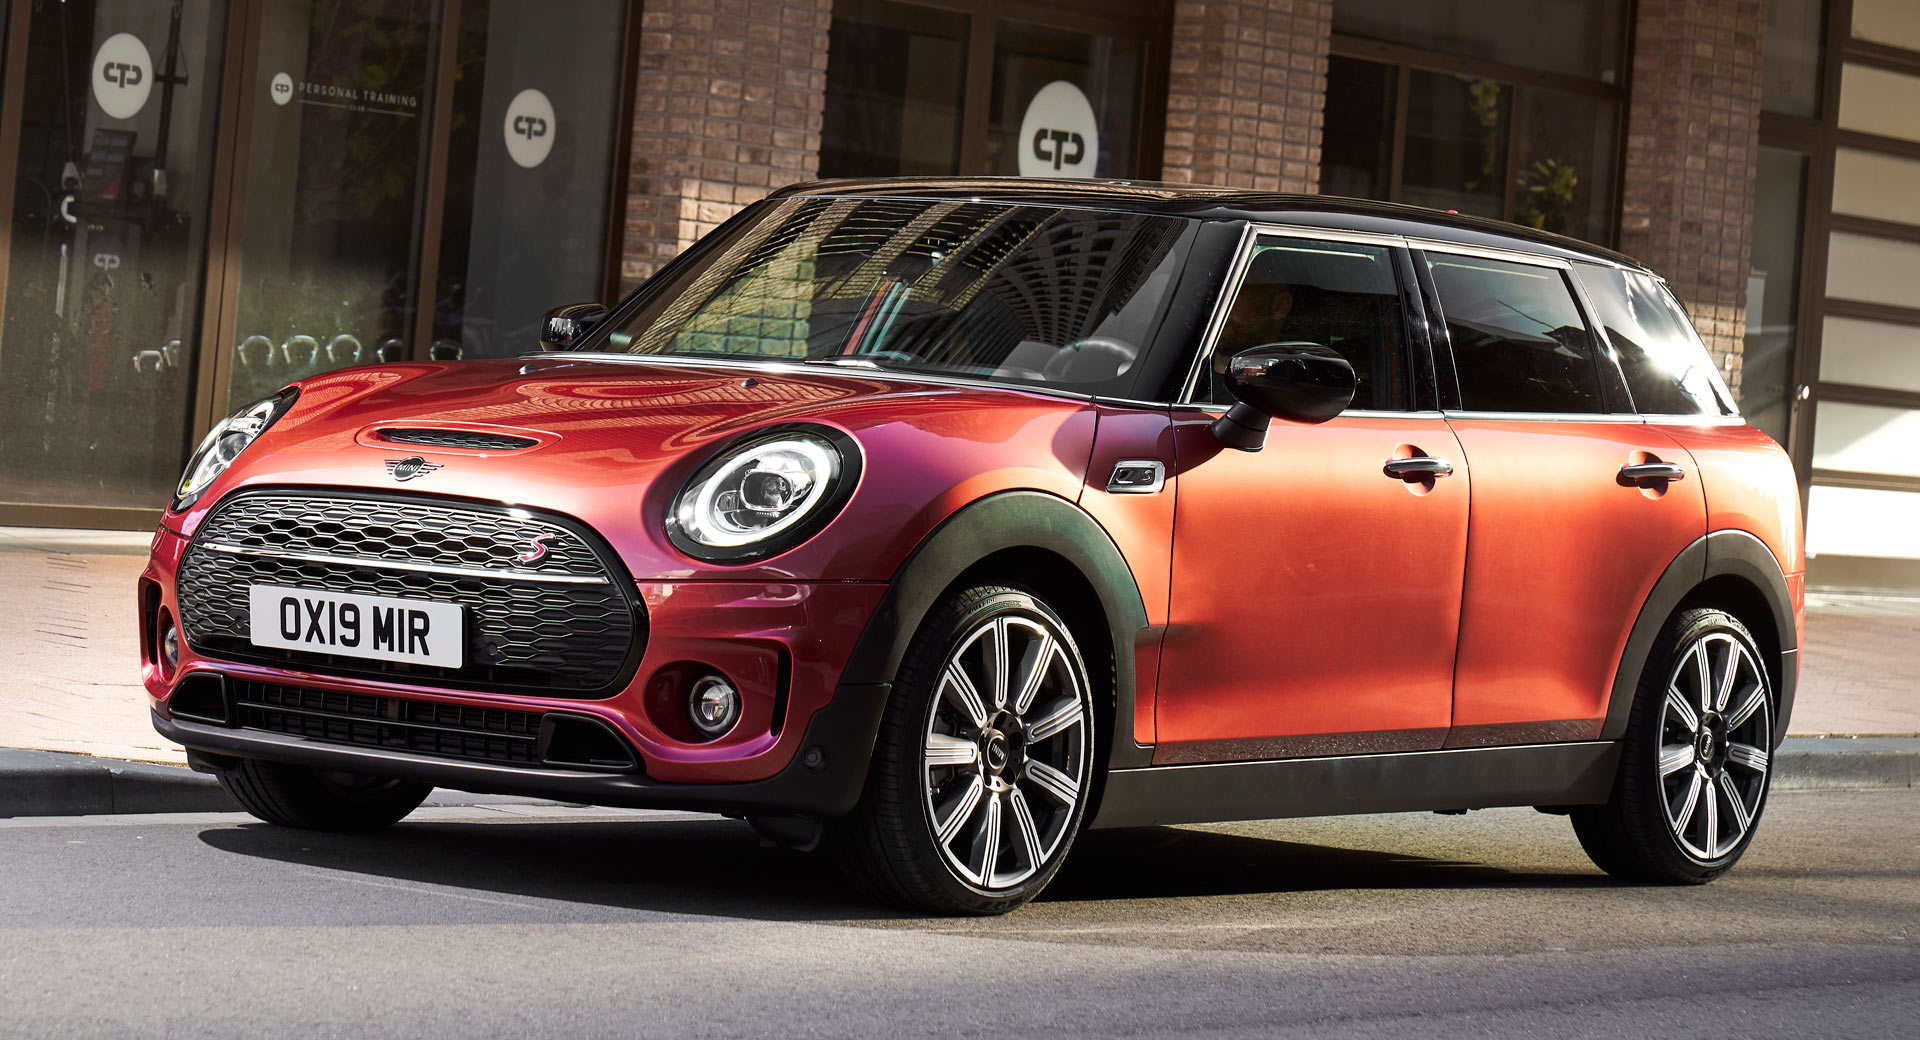 Mini Updates The 2020 Clubman With A Series Of Small